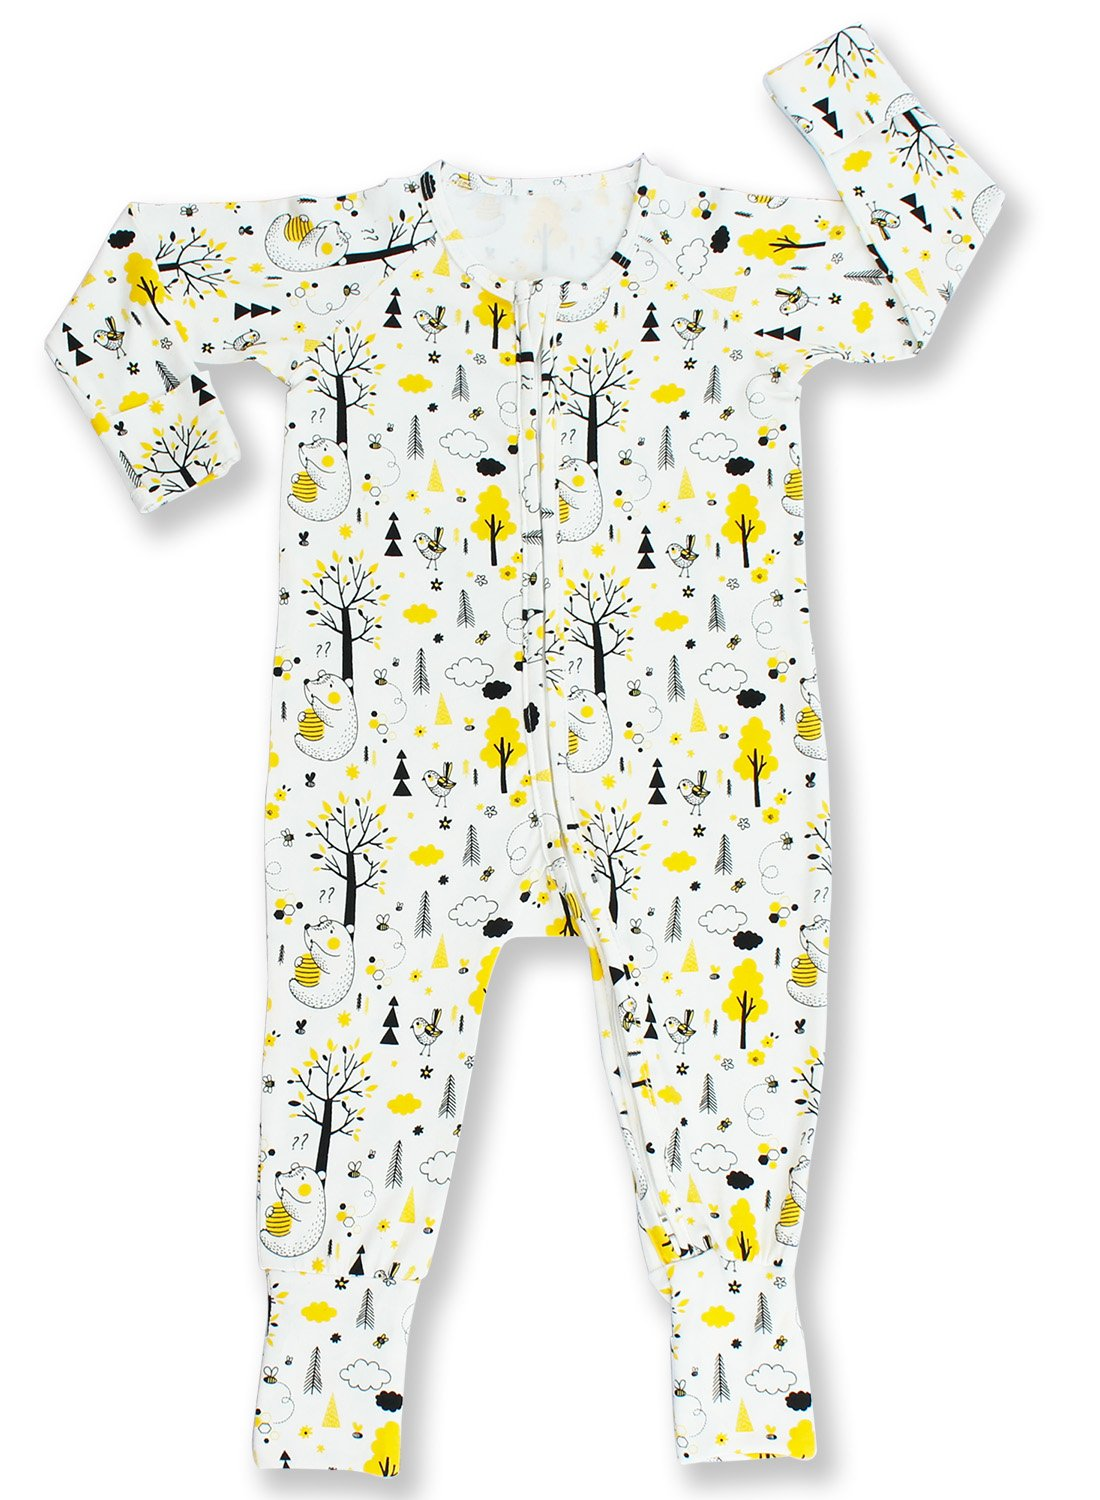 Pajammie Zipsuits Unisex Baby Bamboo and Organic Cotton Sleeper Footie Romper with 2-Way Zip (2T, Honey Bears)